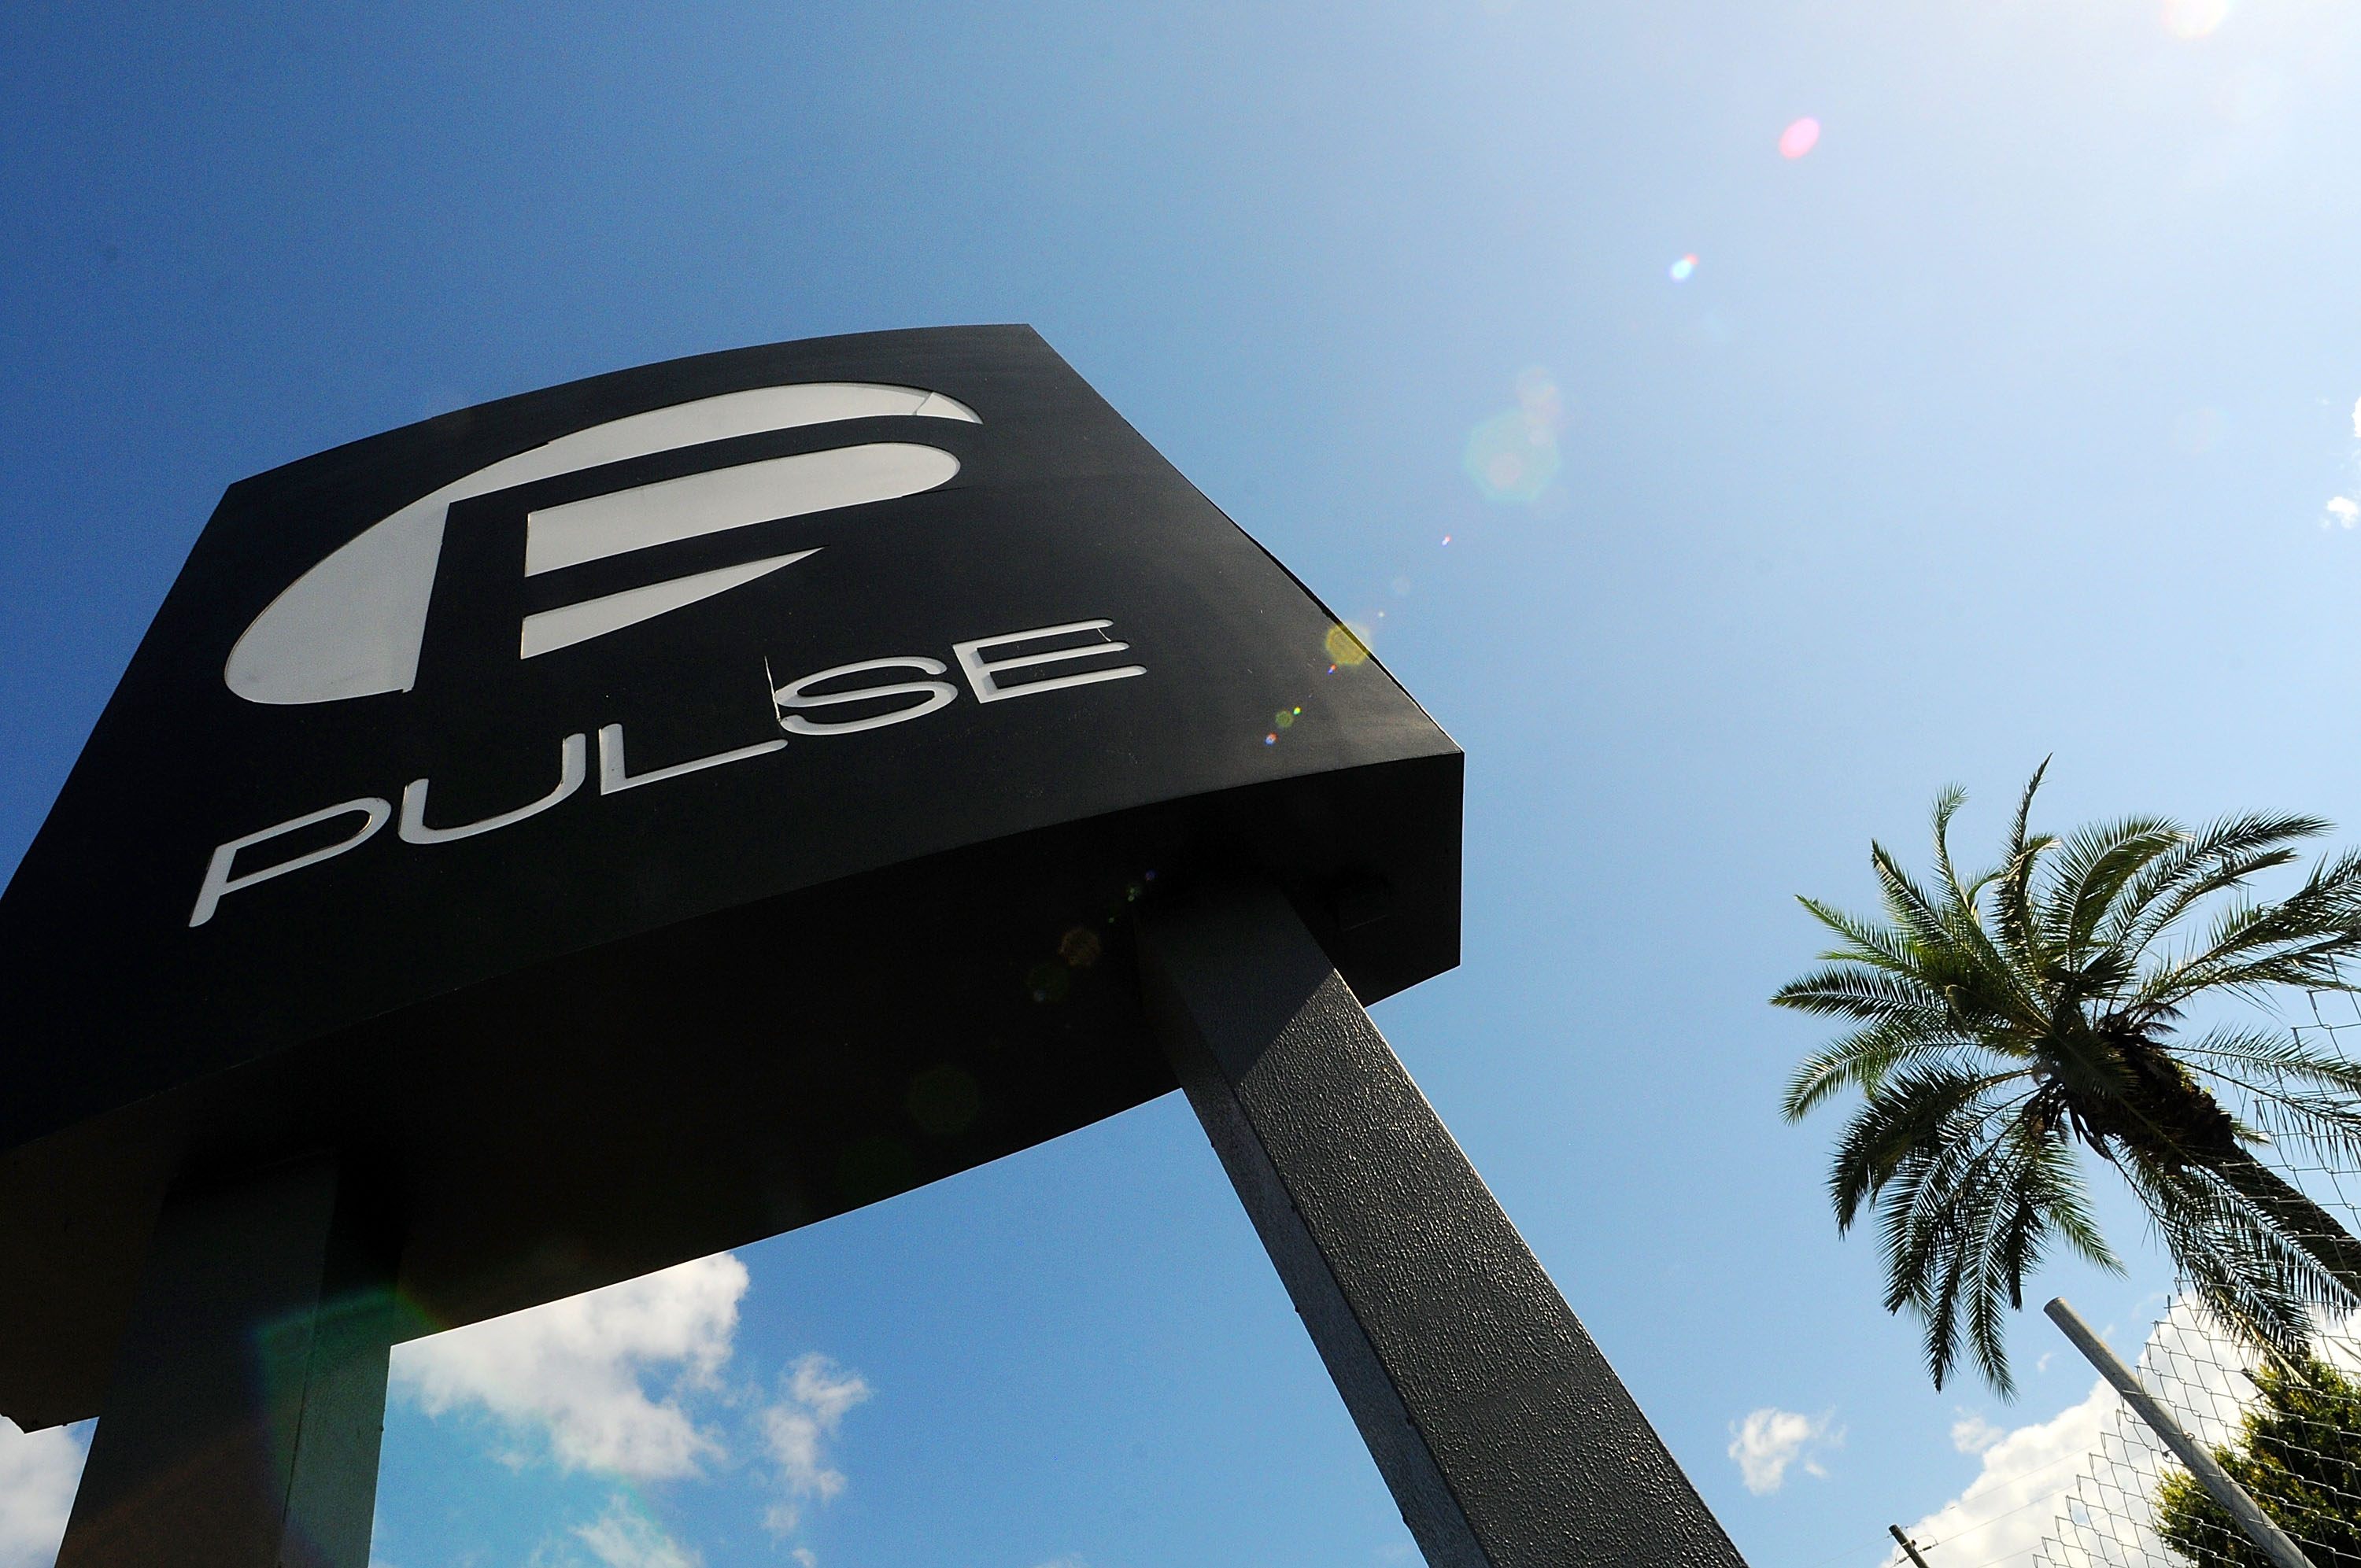 A view of the Pulse Nightclub sign on June 21, 2016 in Orlando, Florida.